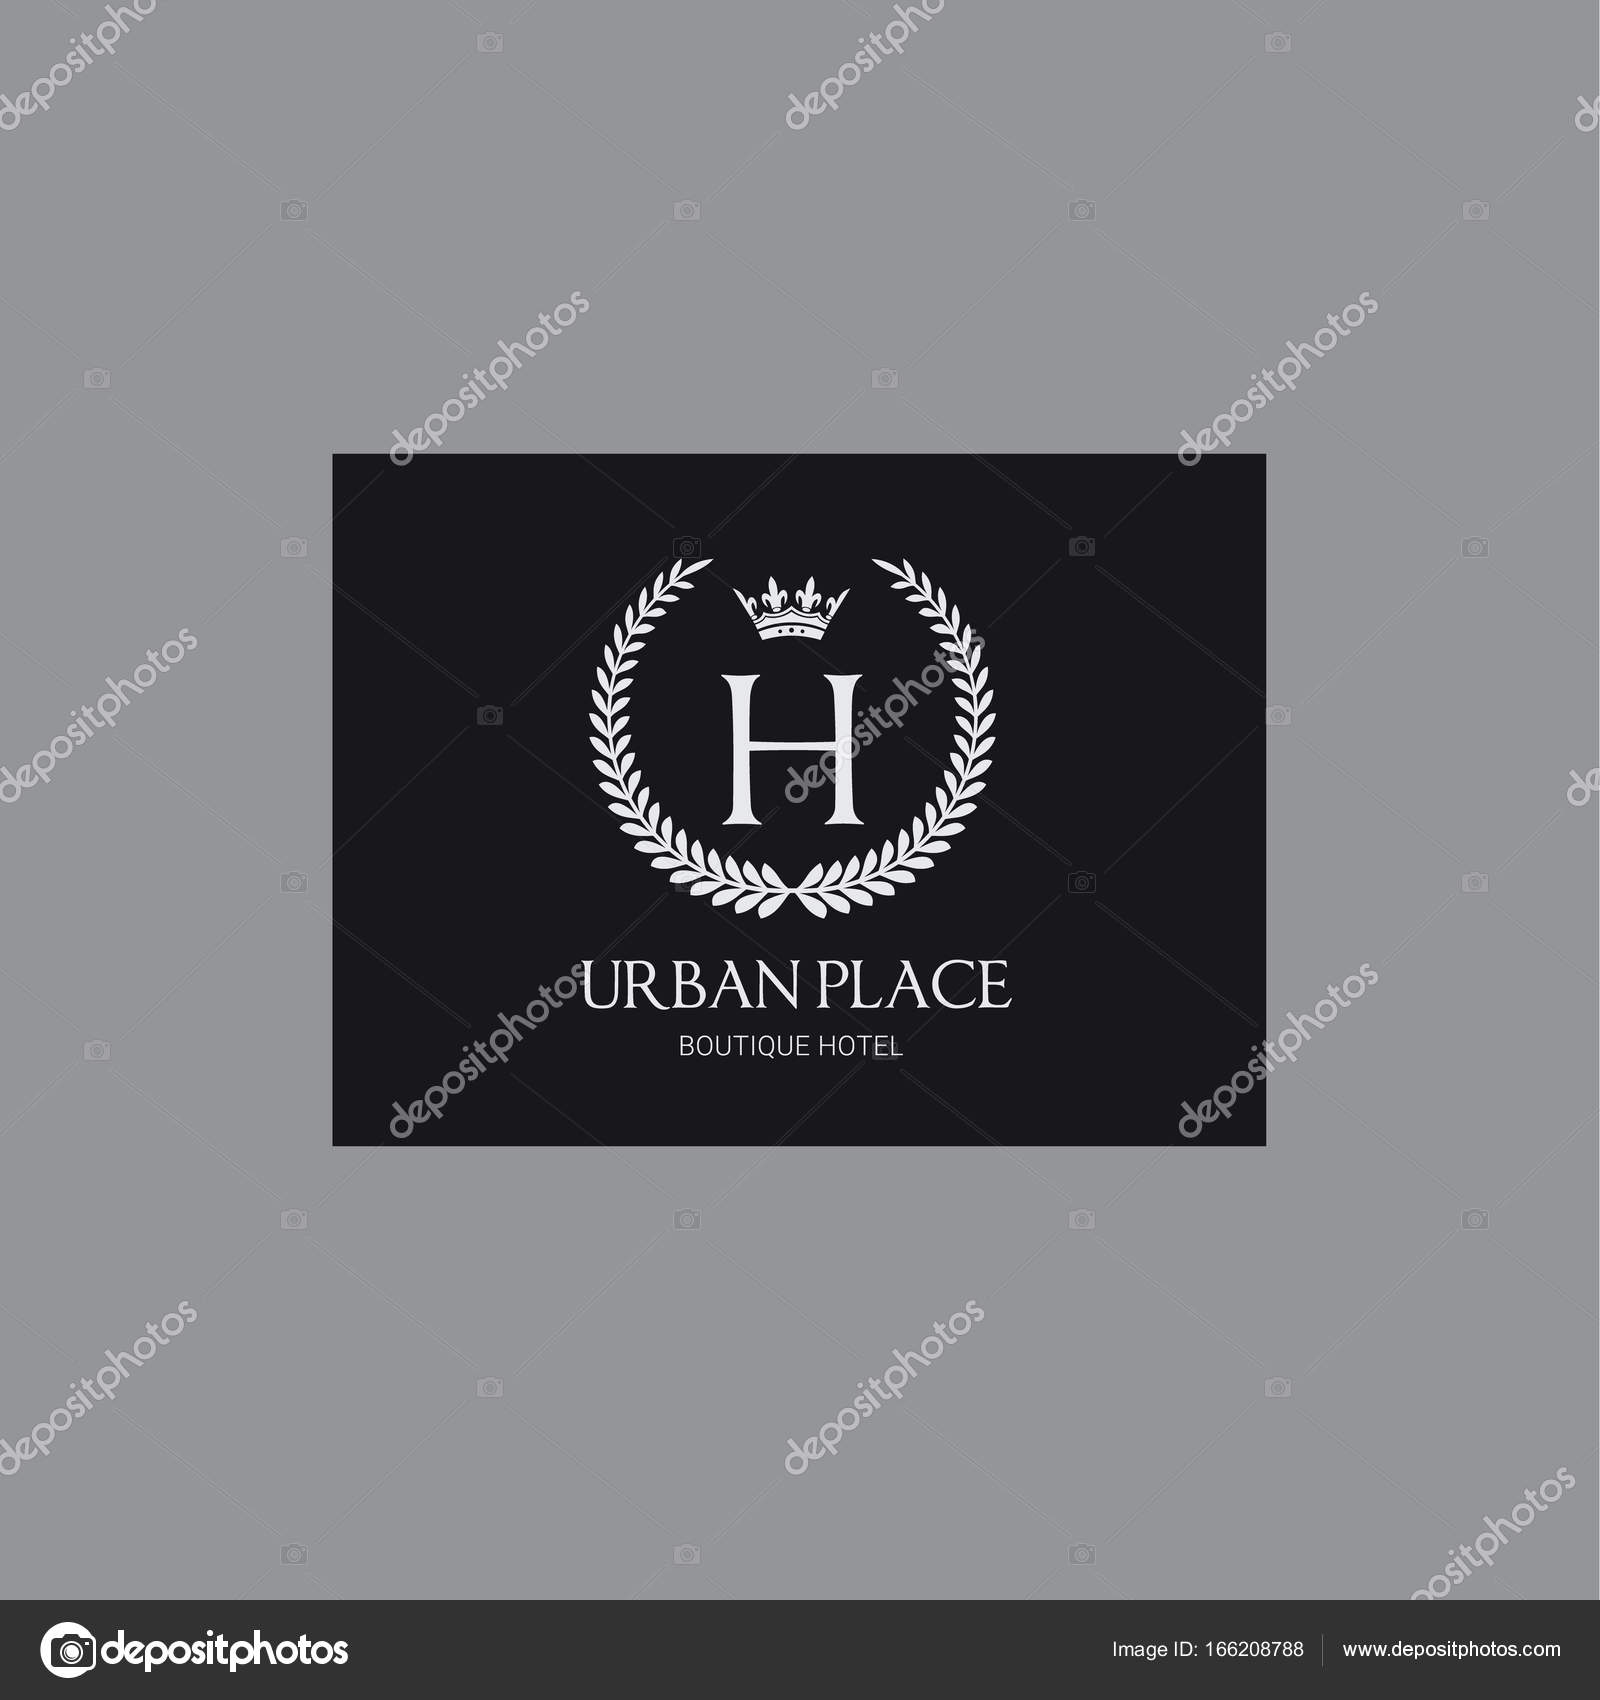 Law firm logo icon vector design  Universal legal, lawyer